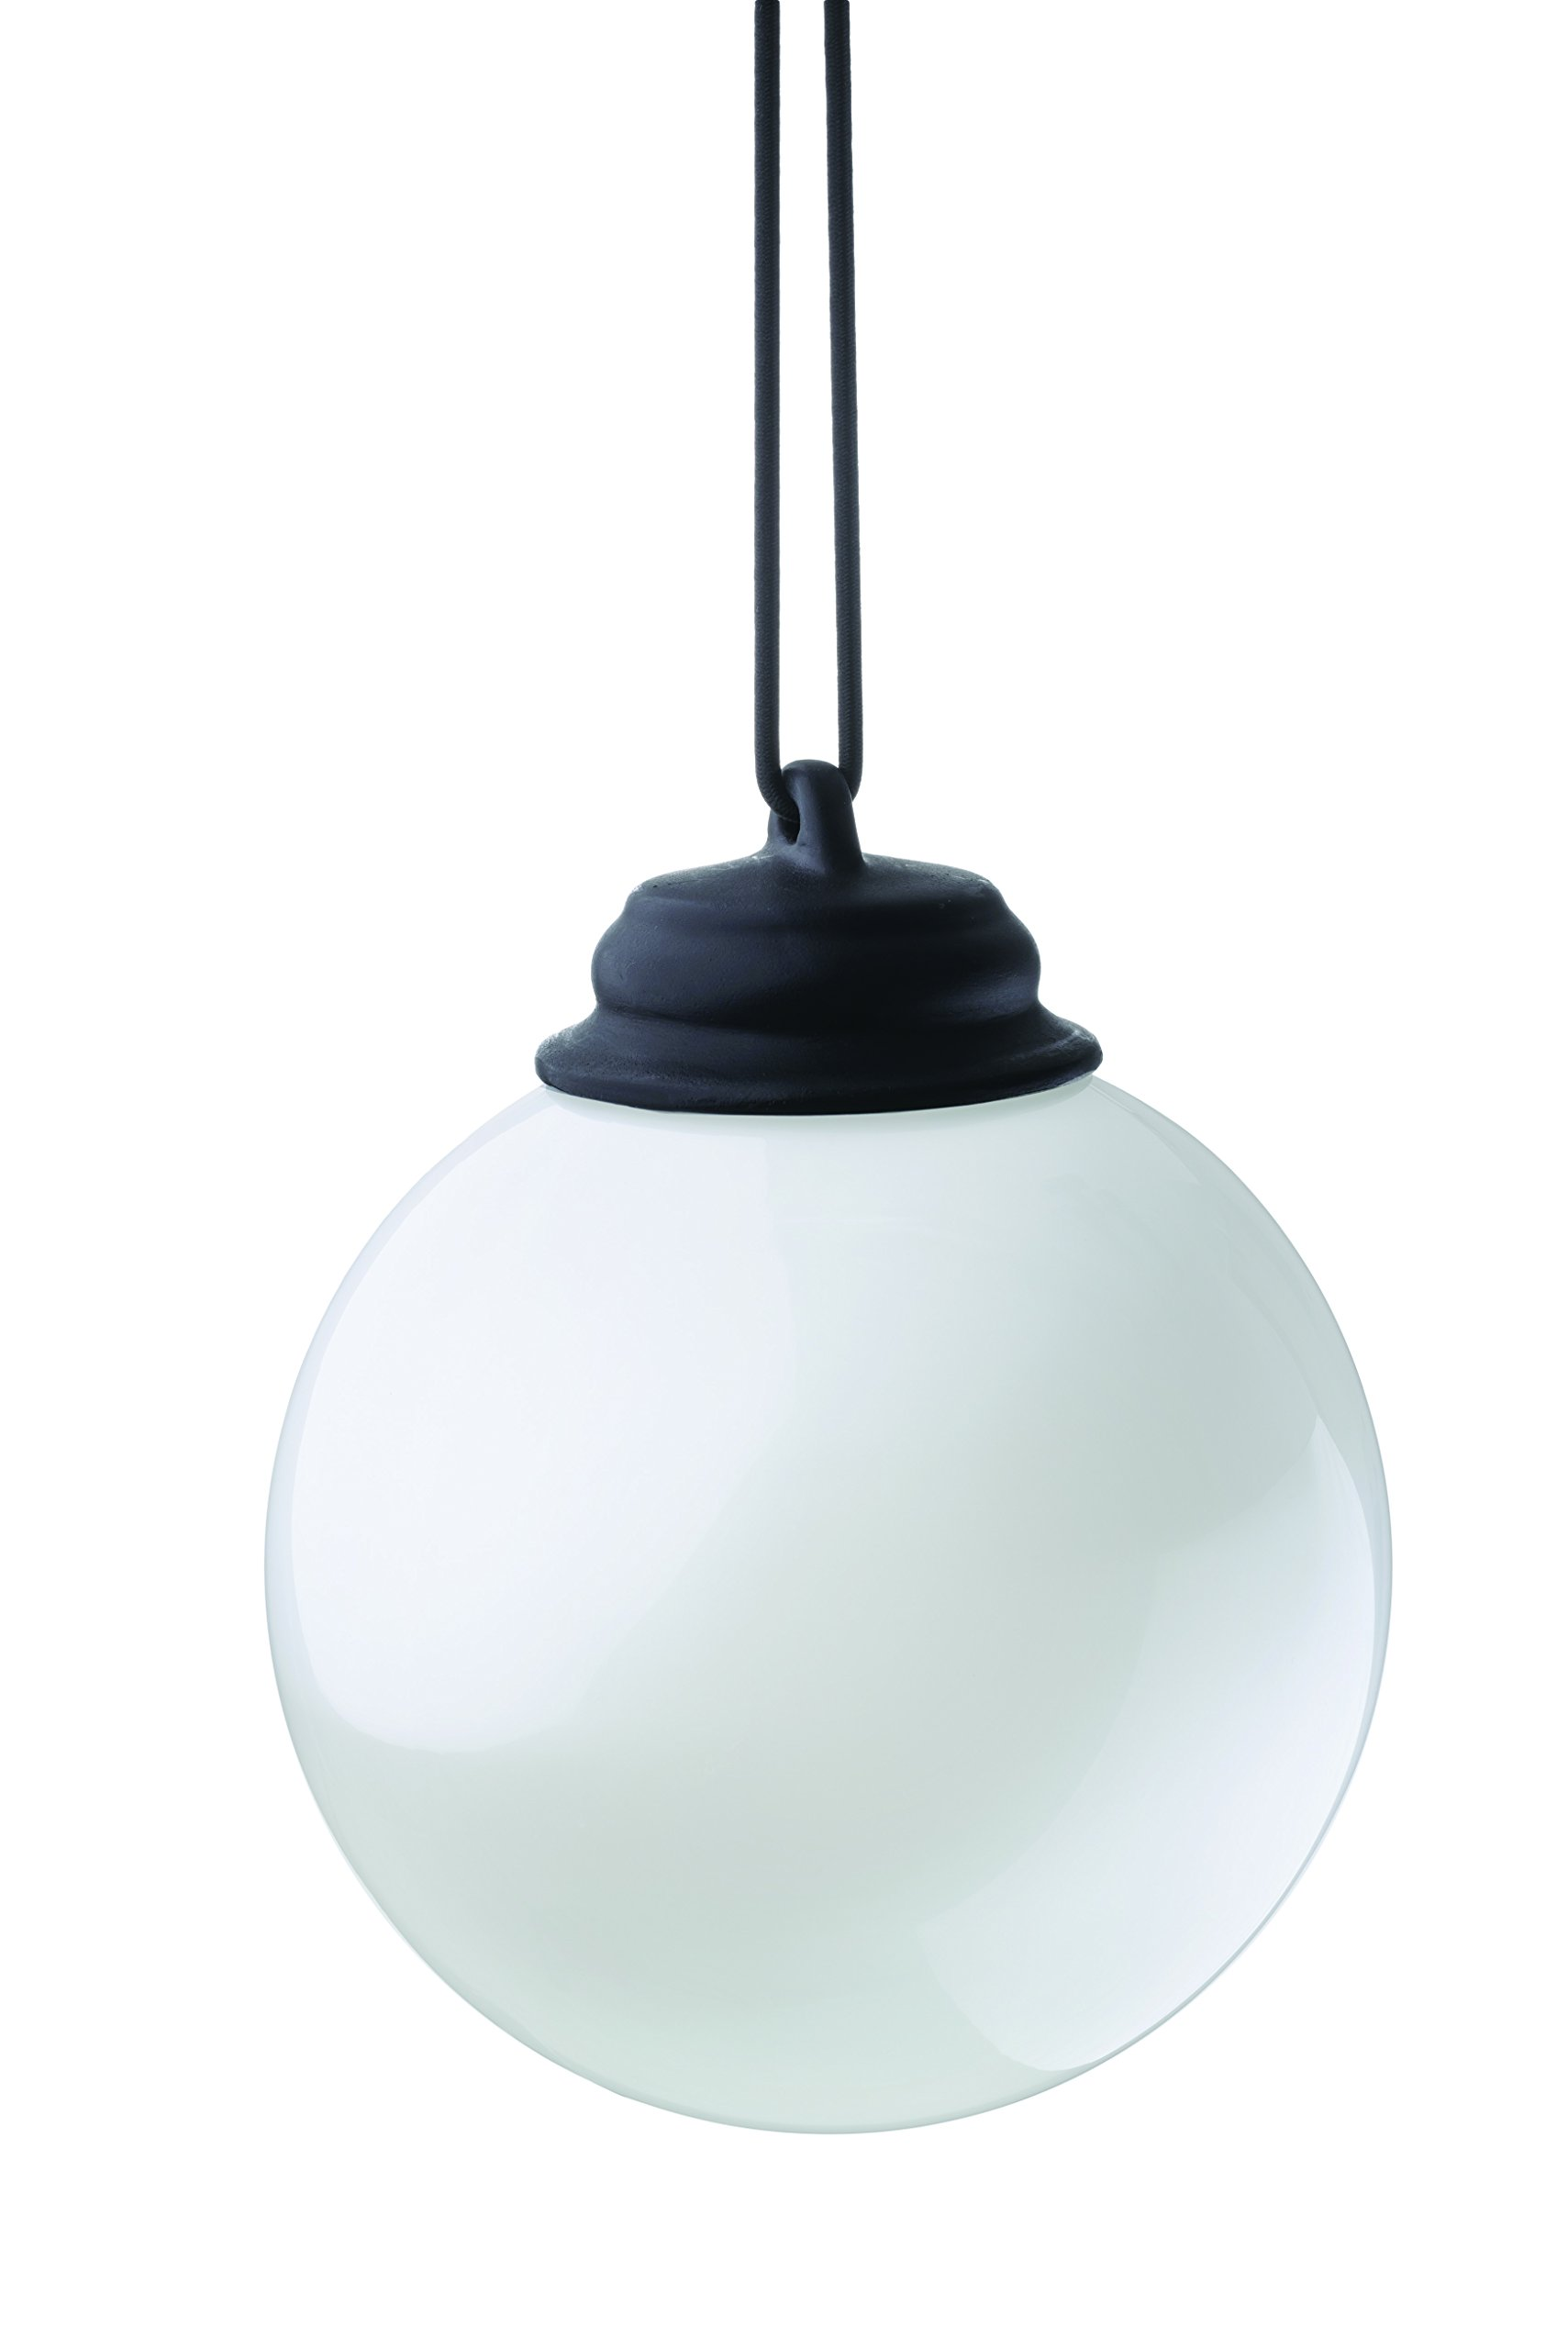 Xodus Innovations WP400 Battery Powered Hanging Decorative Outdoor LED Pulsing 5'' Globe Light with Sensor Turns on at Dark, 5'', White